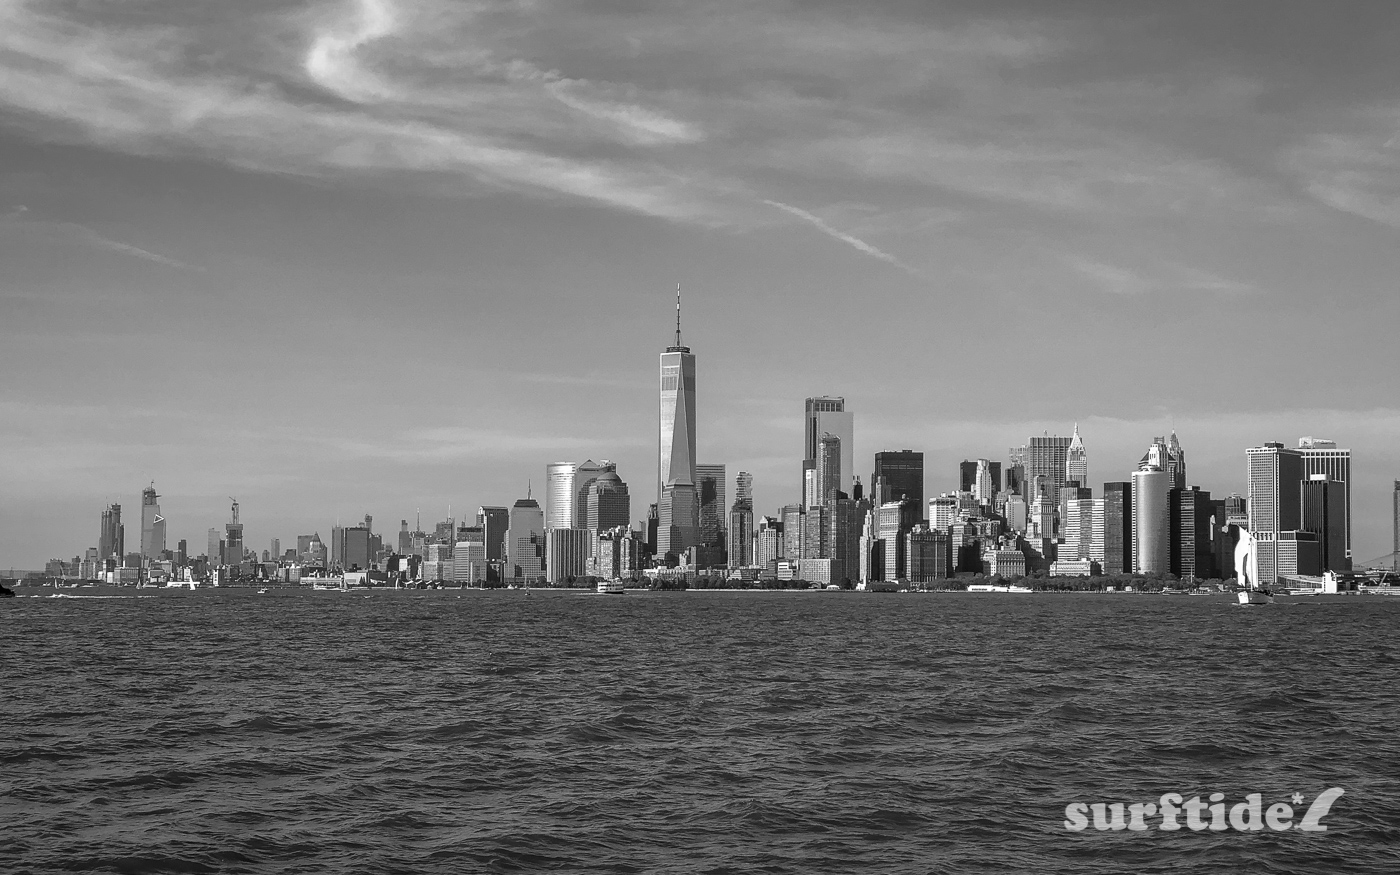 Black & White photo of Manhattan Island